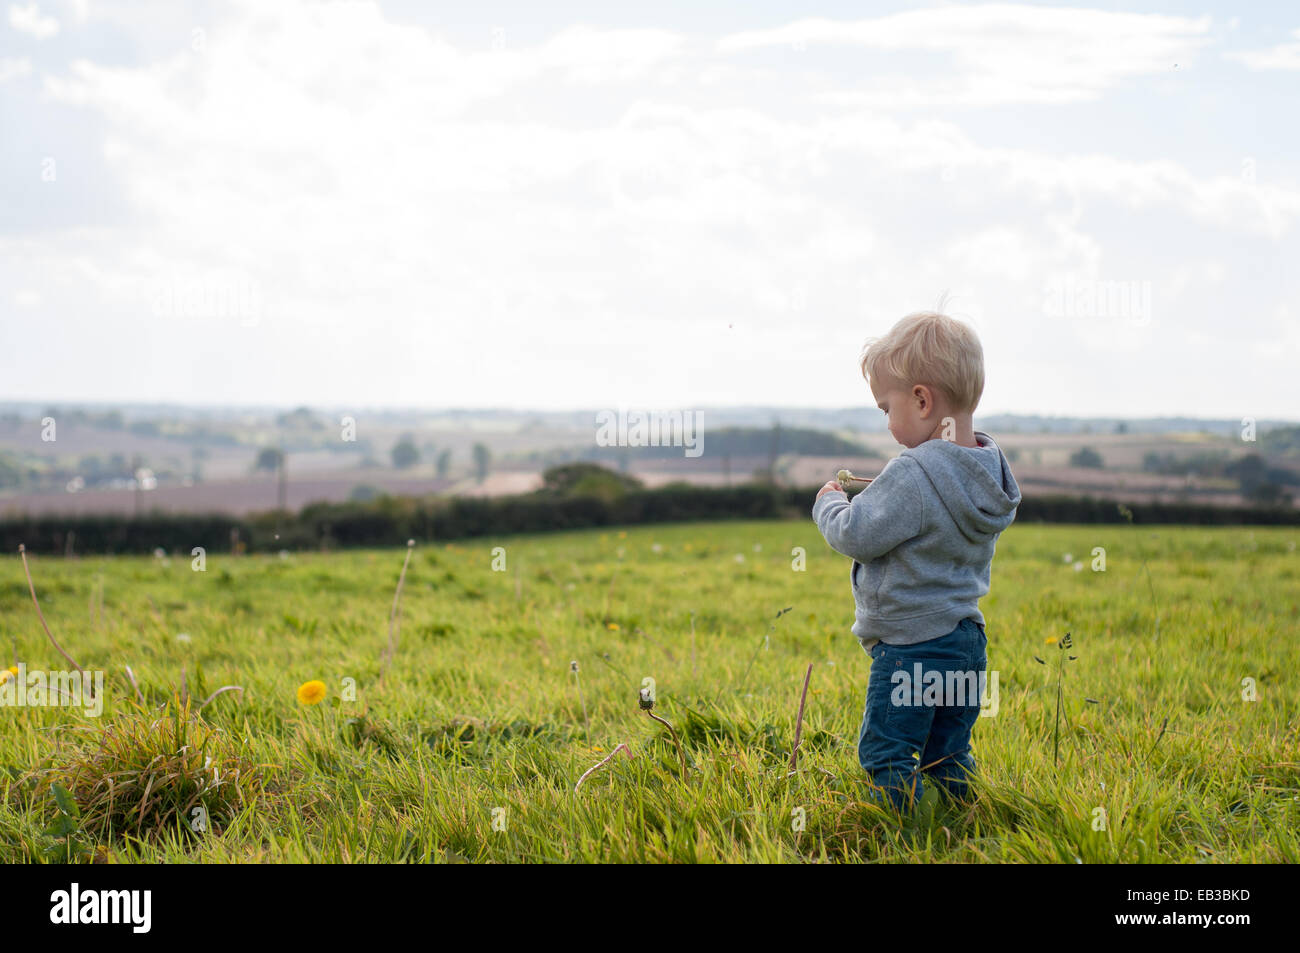 Boy standing in a field Photo Stock